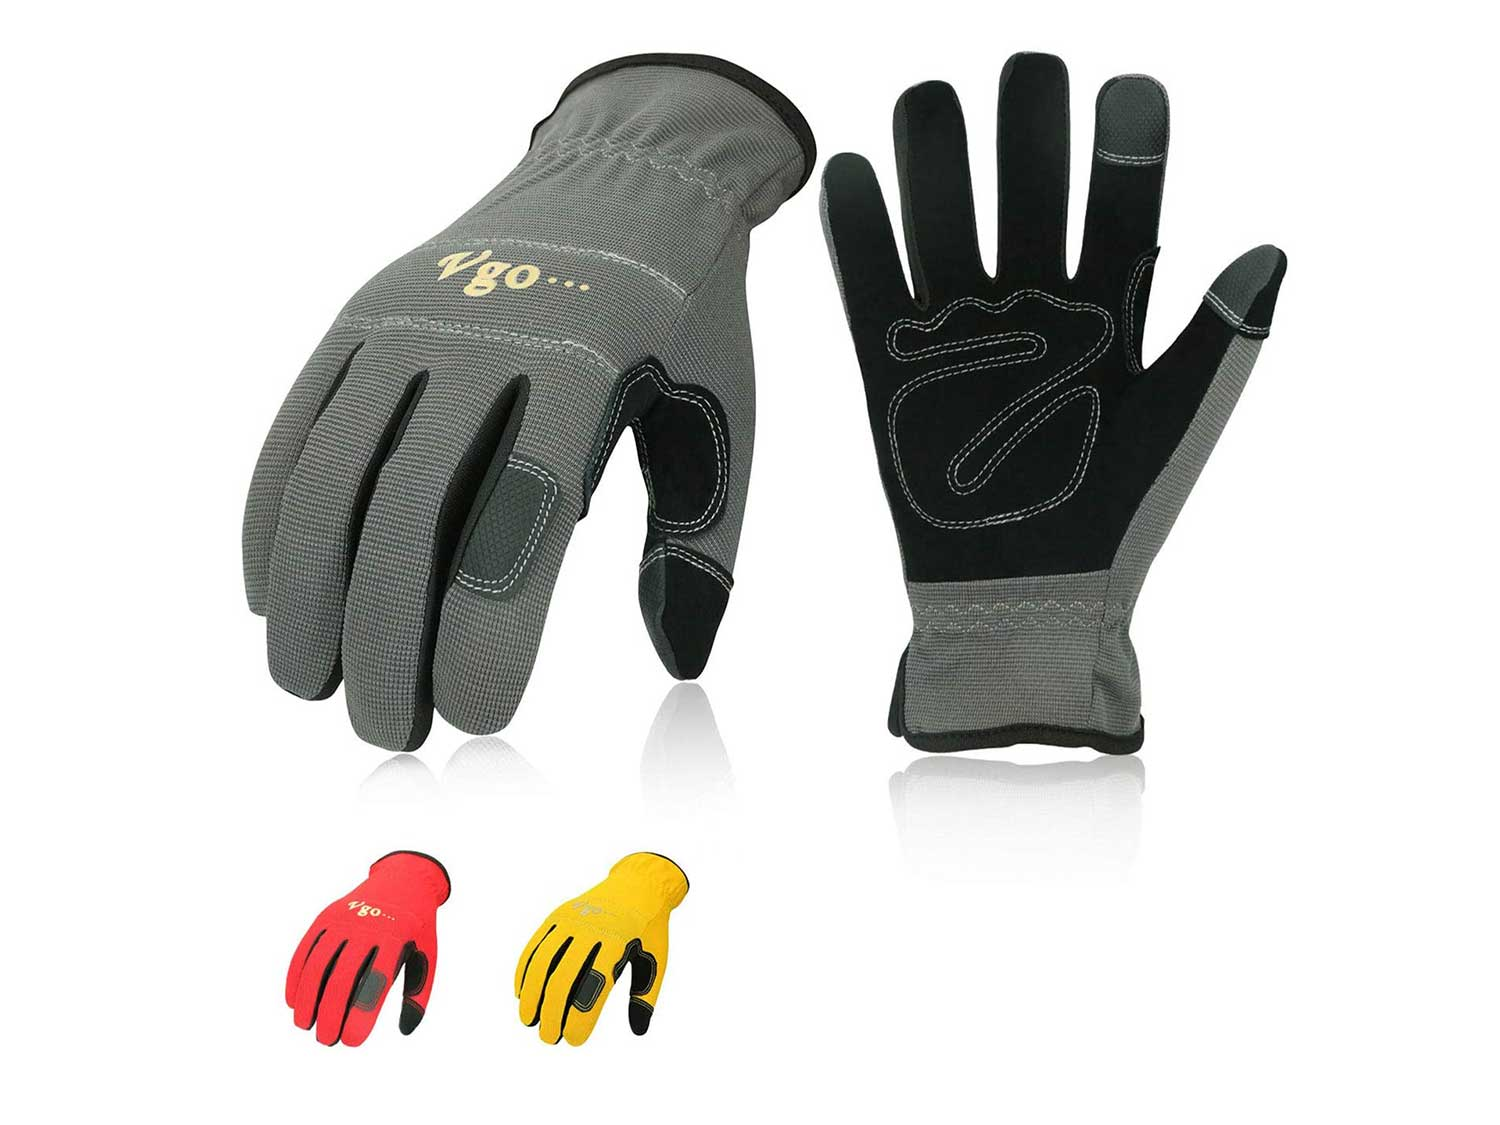 Vgo 3-Pairs Synthetic Leather Work Gloves, Multi-Purpose Light Duty Work Gloves, Breathable & High Dexterity, Touchscreen (Size XL, Yellow, Red & Grey, NB7581)